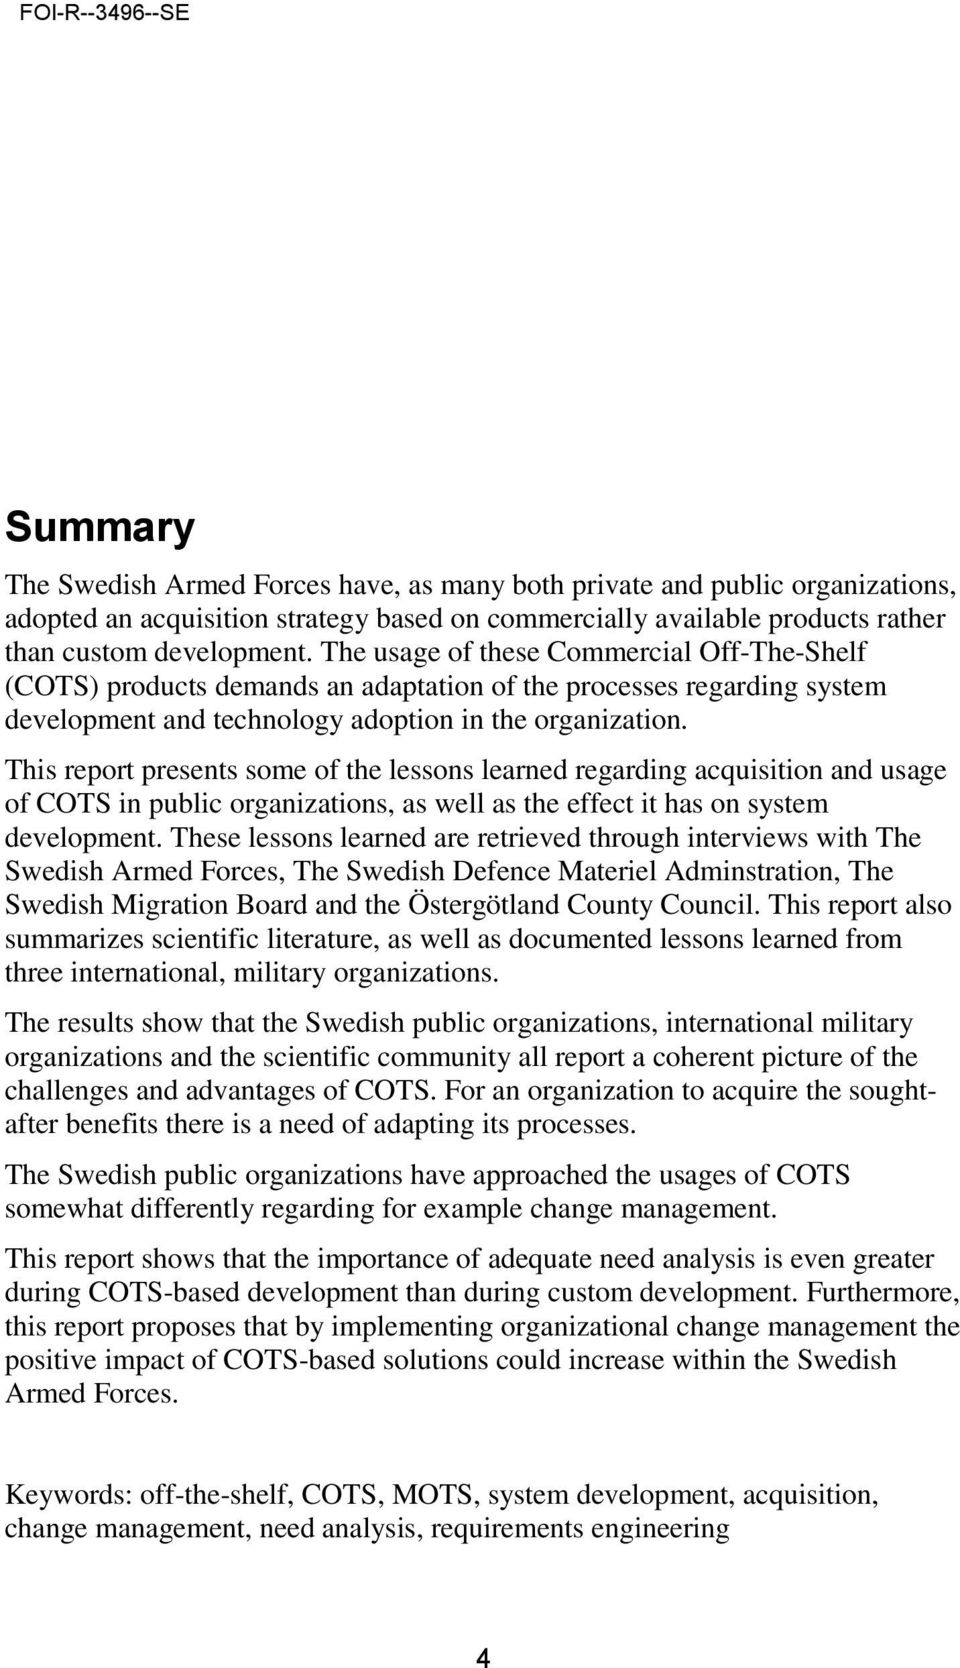 This report presents some of the lessons learned regarding acquisition and usage of COTS in public organizations, as well as the effect it has on system development.